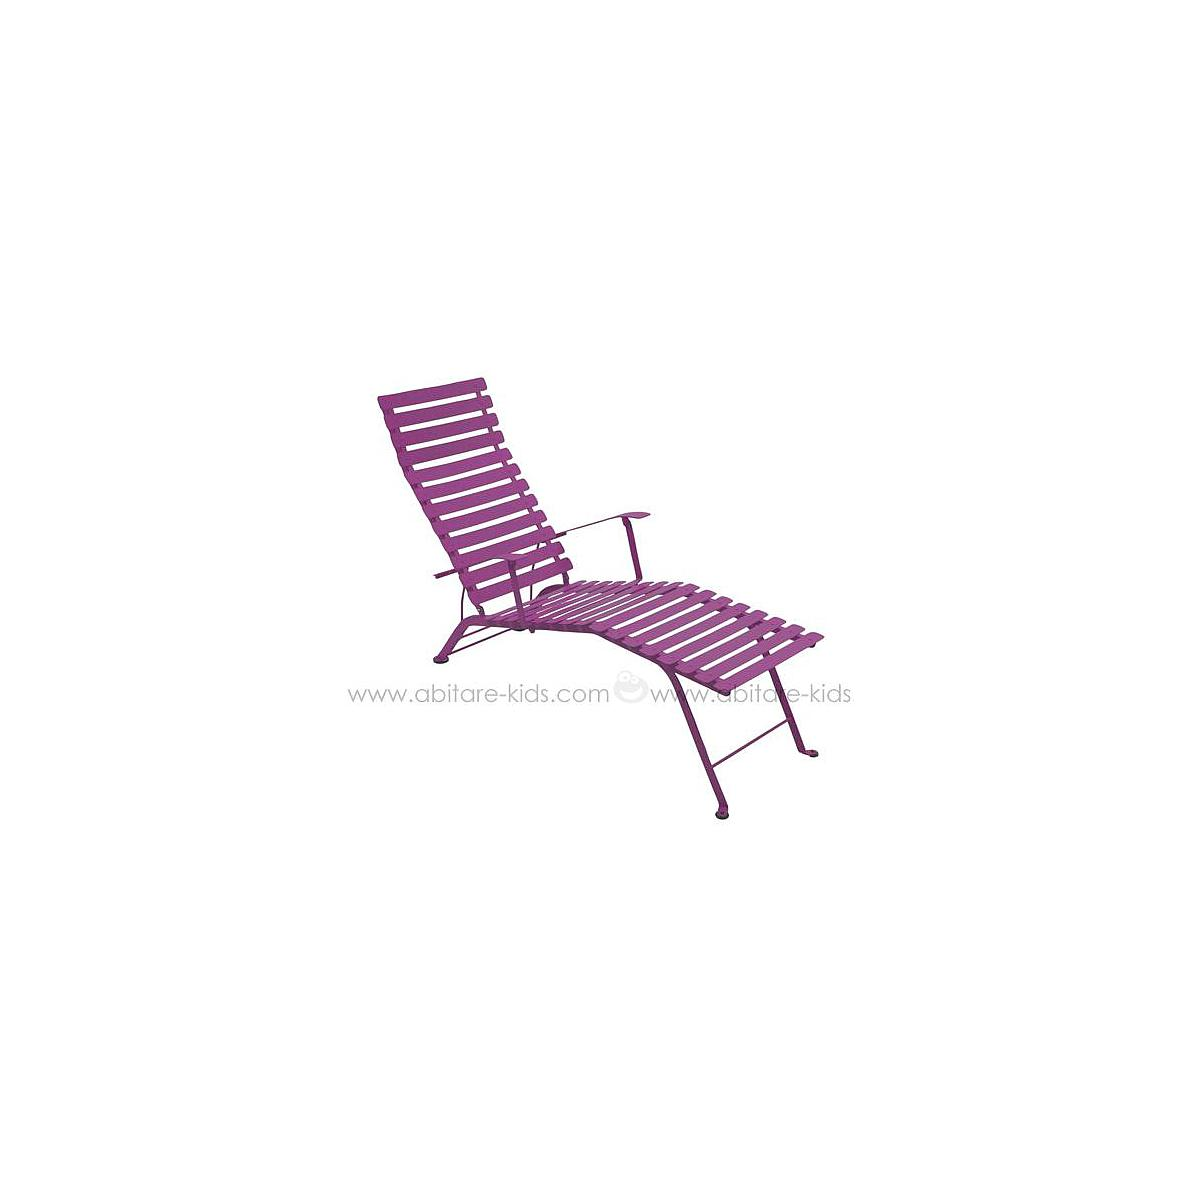 BISTRO by Fermob Chaise longue aubergine